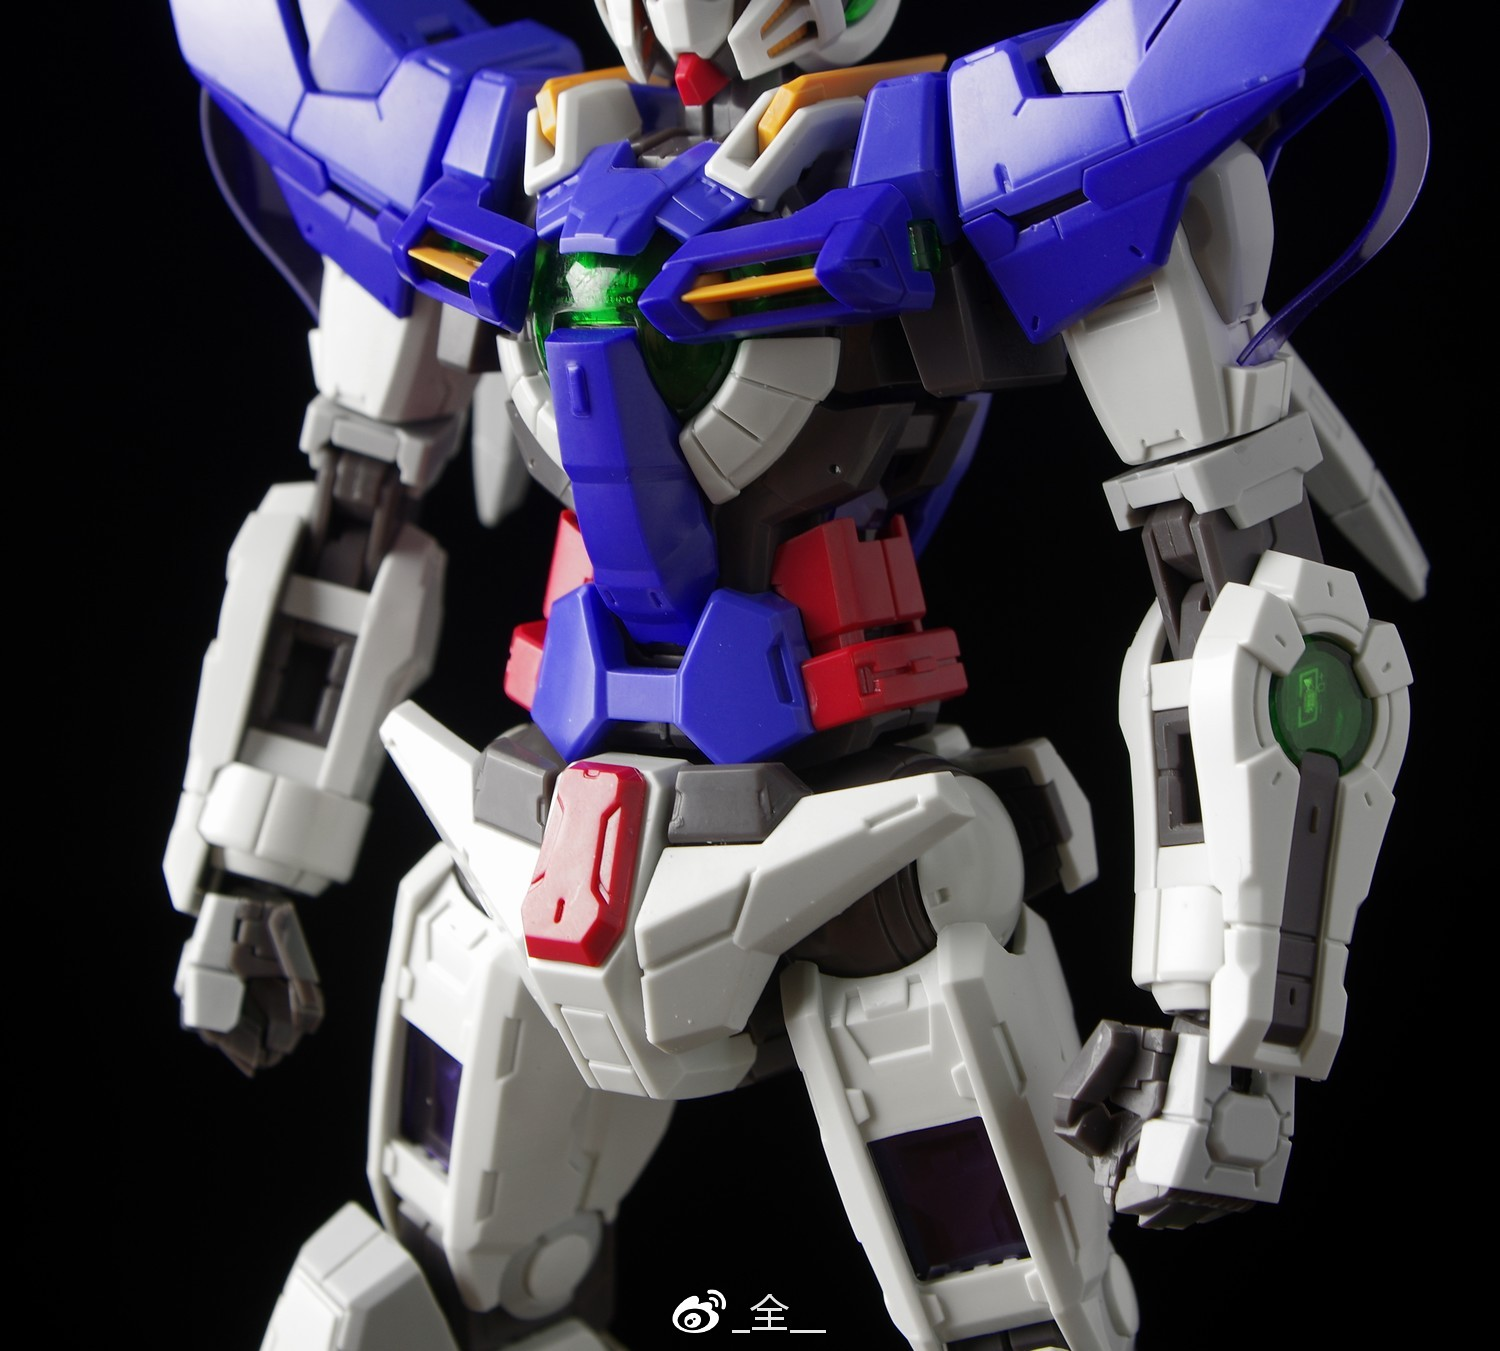 S269_mg_exia_led_hobby_star_inask_037.jpg